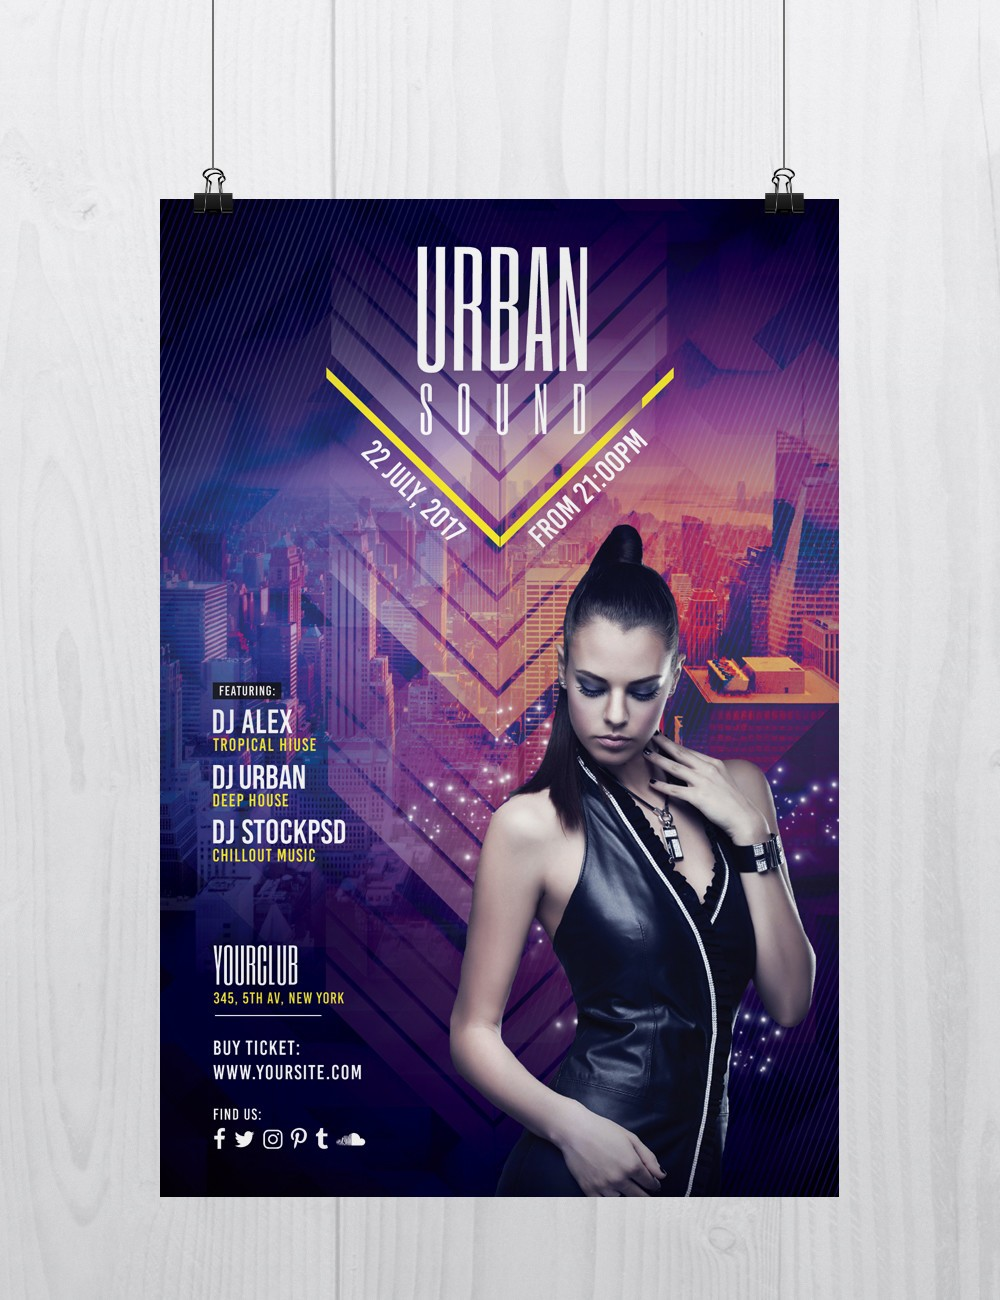 urban sound is free psd photoshop flyer template to download this free psd flyer is fully editable and very easy to edit and customize - Free Psd Flyer Templates